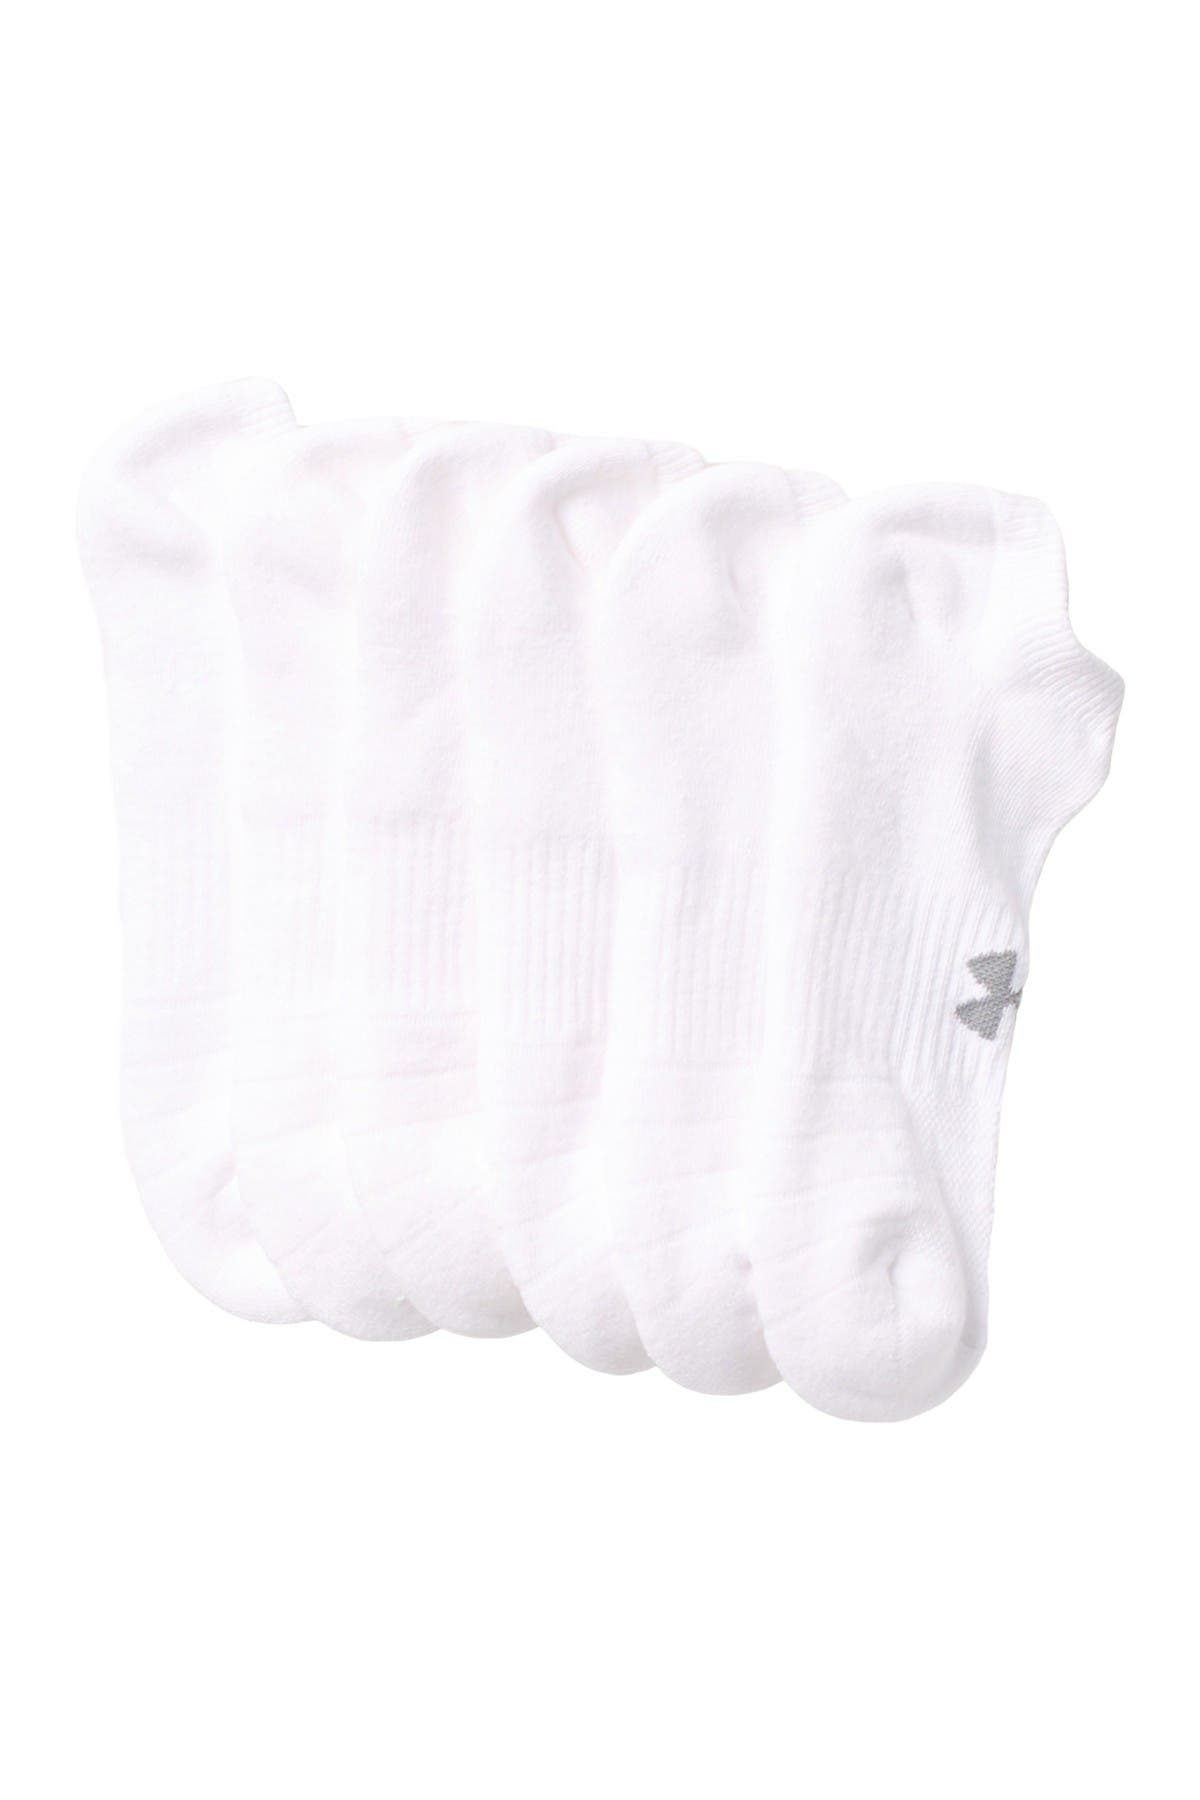 Image of Under Armour Training Cotton Blend No Show Socks - Pack of 6